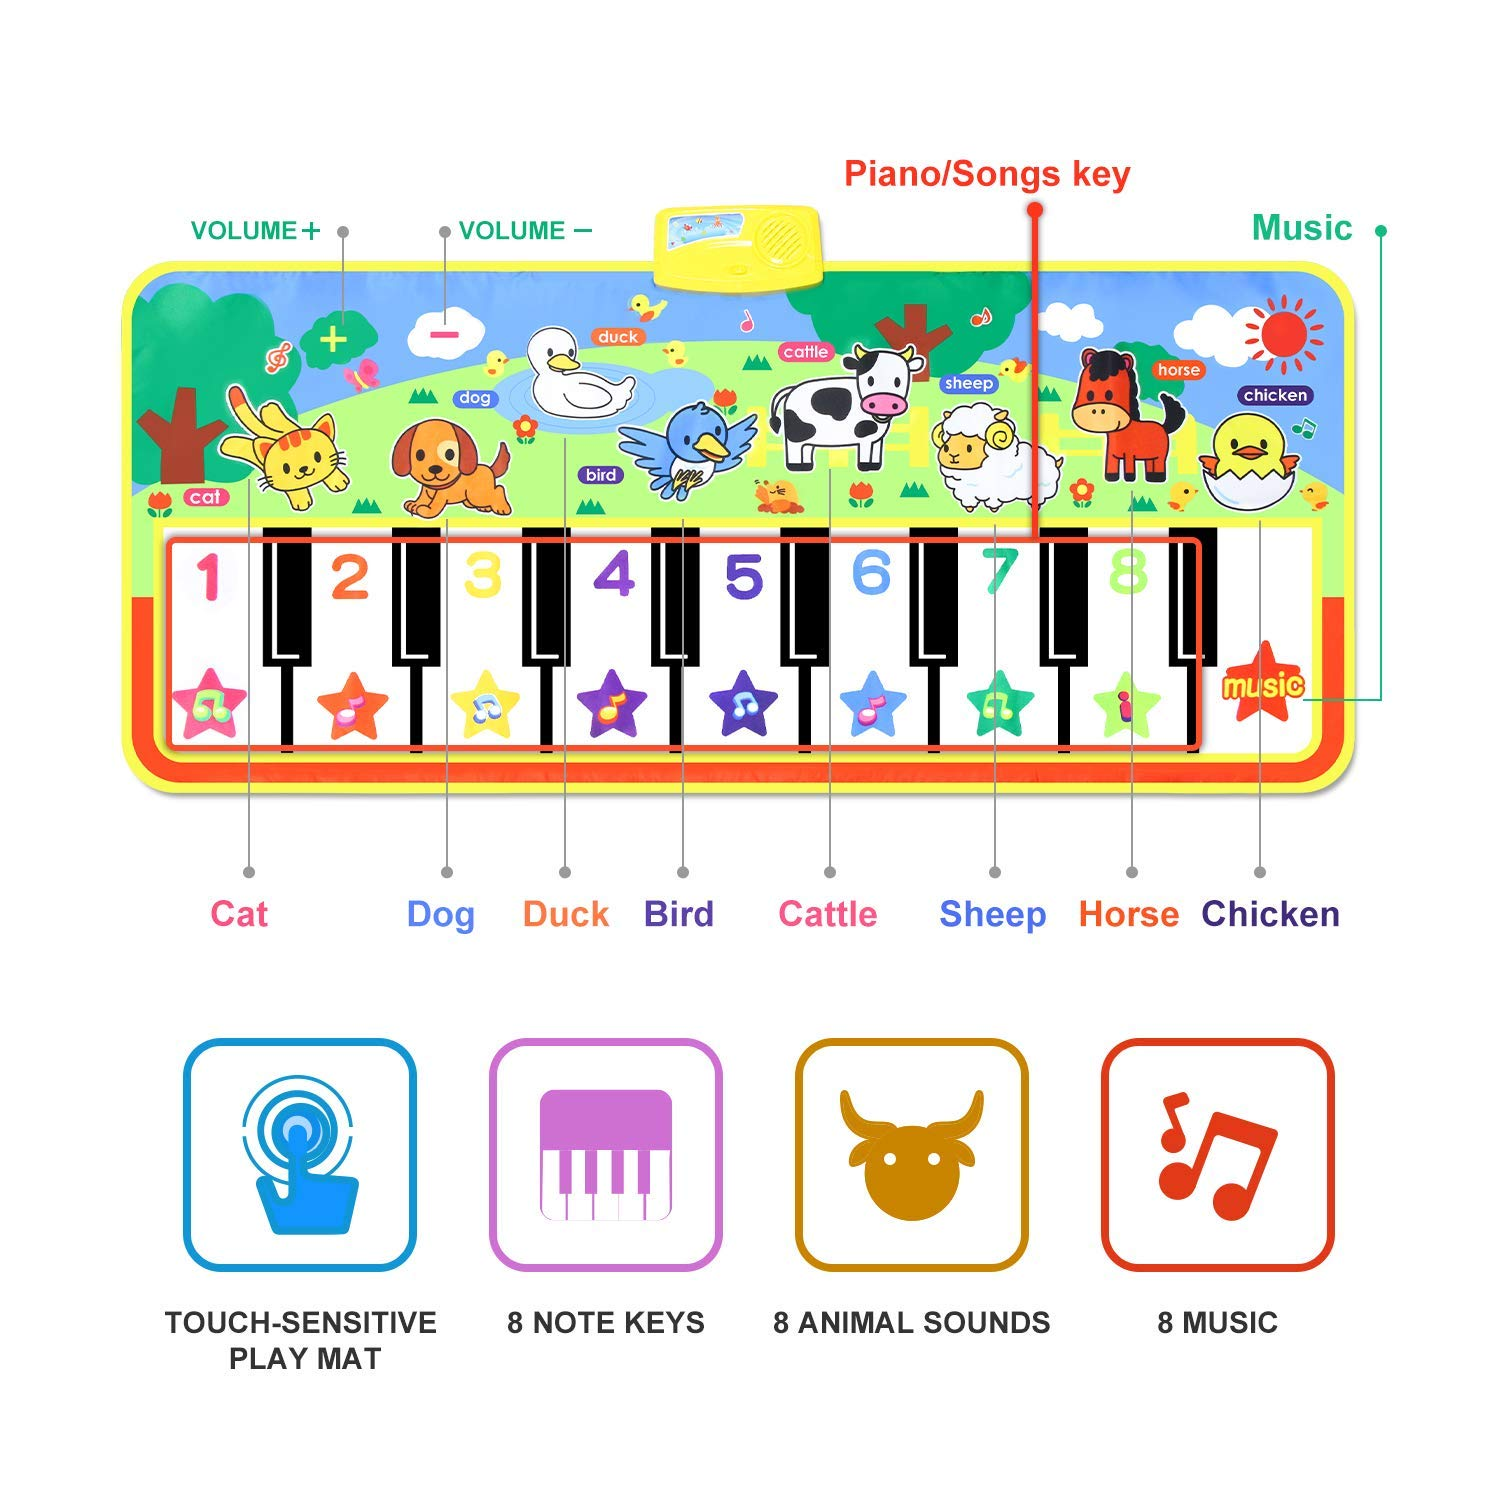 Joyfia Piano Mat, 53.2'' Electronic Music Piano Keyboard Carpet Animal Blanket Touch Dance Play Mat Toys, Baby Early Education Gifts for Kids Toddler Infant Boys Girls by Joyfia (Image #2)